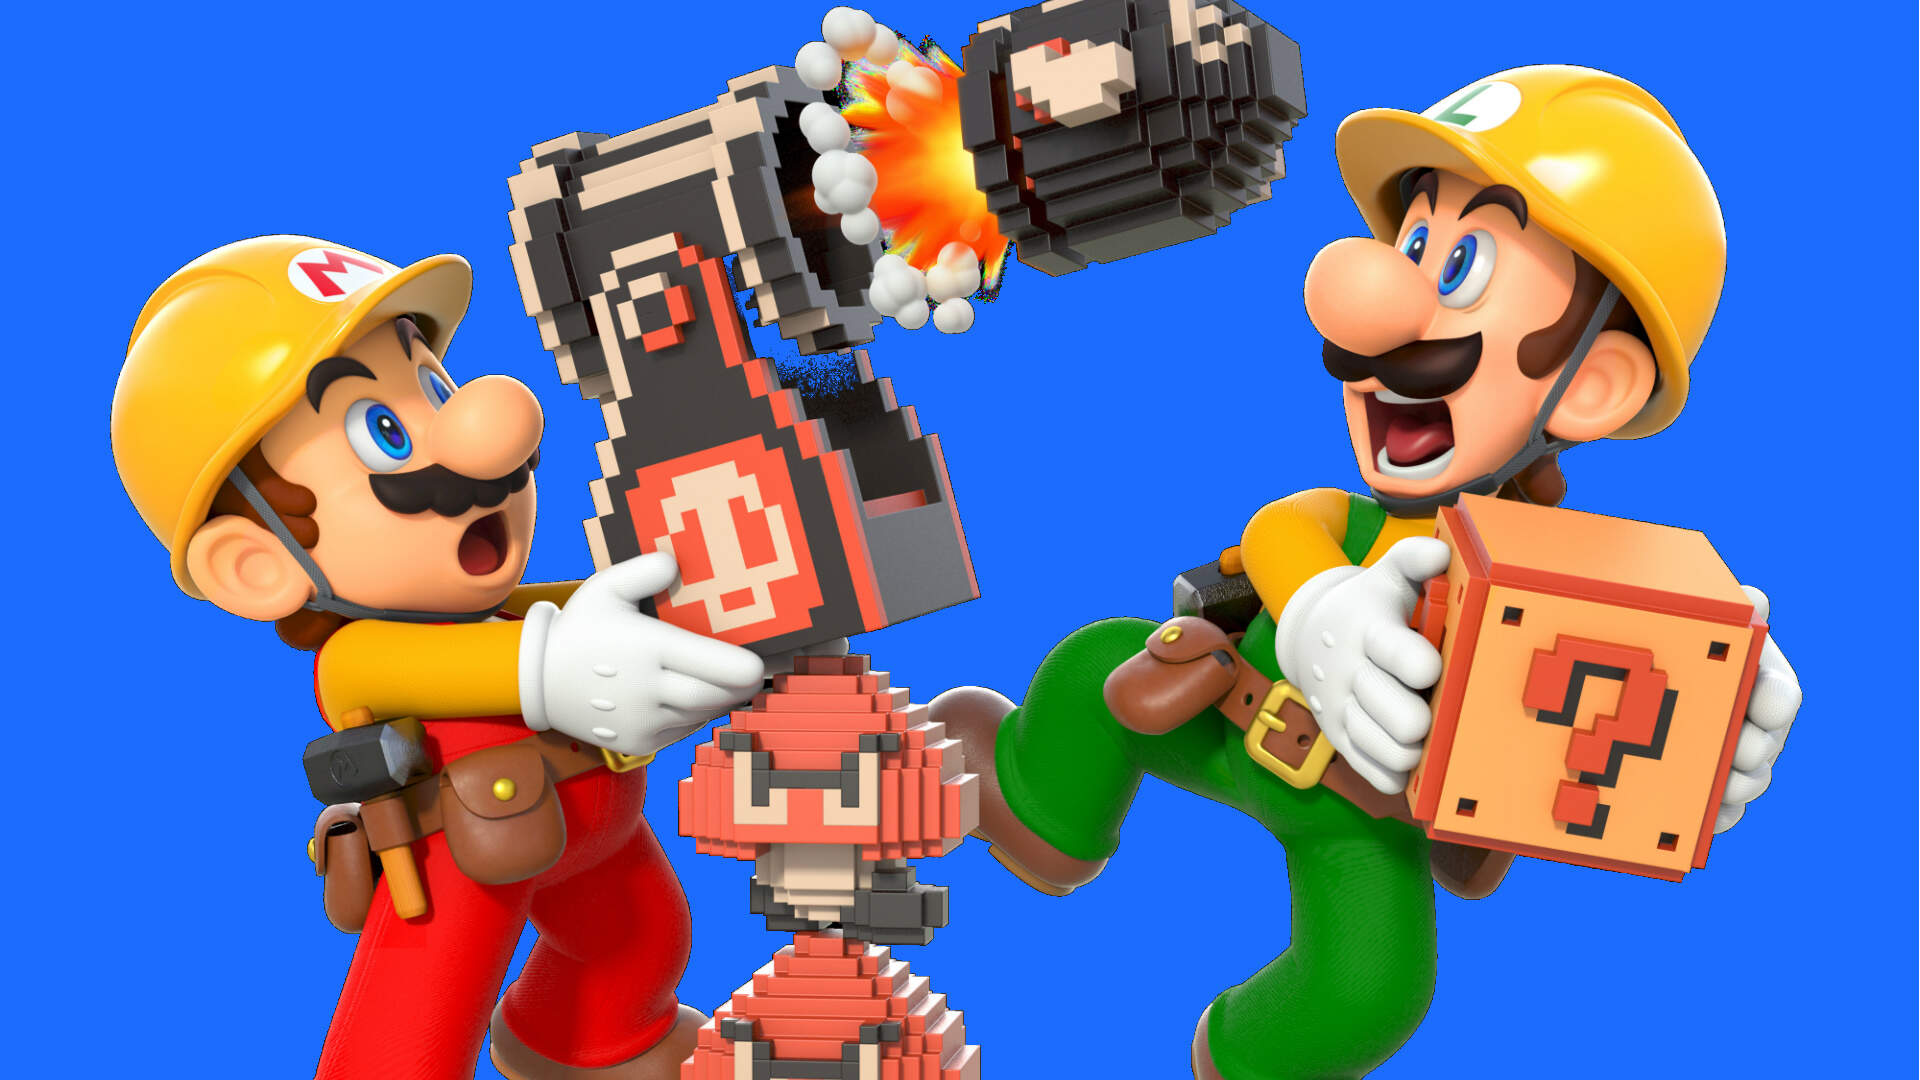 Super Mario Maker 2 Release Date, Story Mode, Night Theme - Everything We Know